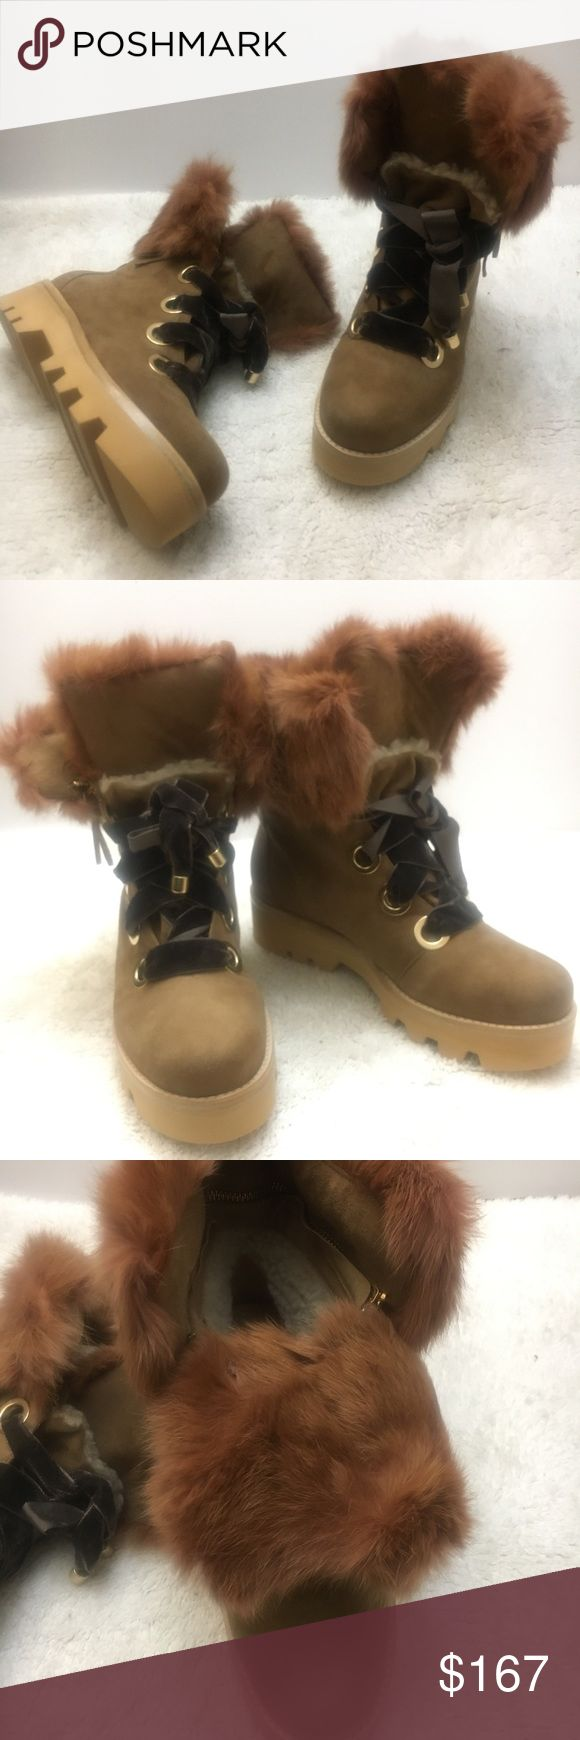 """Rachel Zoe Vayl Sherling Boot Sepia color Lace up shelving style boot.  Suede boot with  rabbit fur upper- removable by zipper.  Velvet wide shoe laces give this boot edge! Cork style platform sole.  Brand New in Box  Size 9 Bottom sole height- 1 3/4"""" Rachel Zoe Shoes Lace Up Boots"""